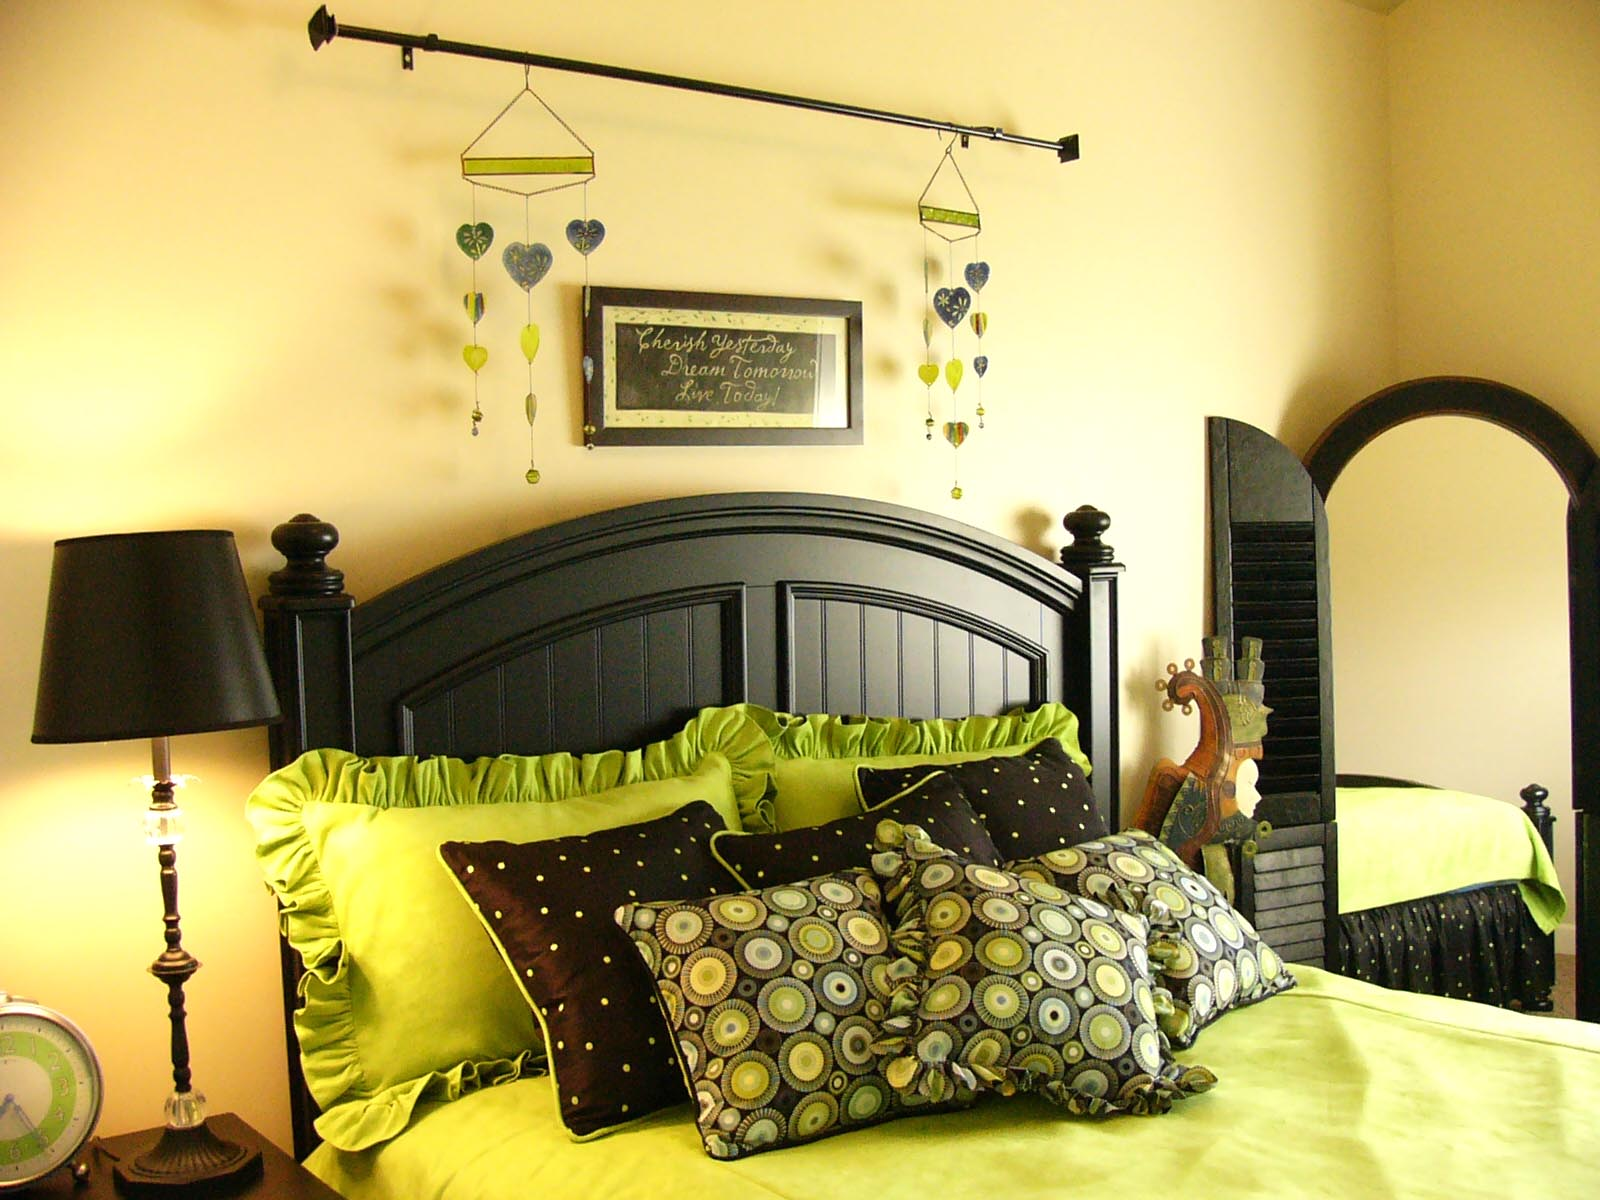 Ideas for Brianna's green and black bedroom on Pinterest ...